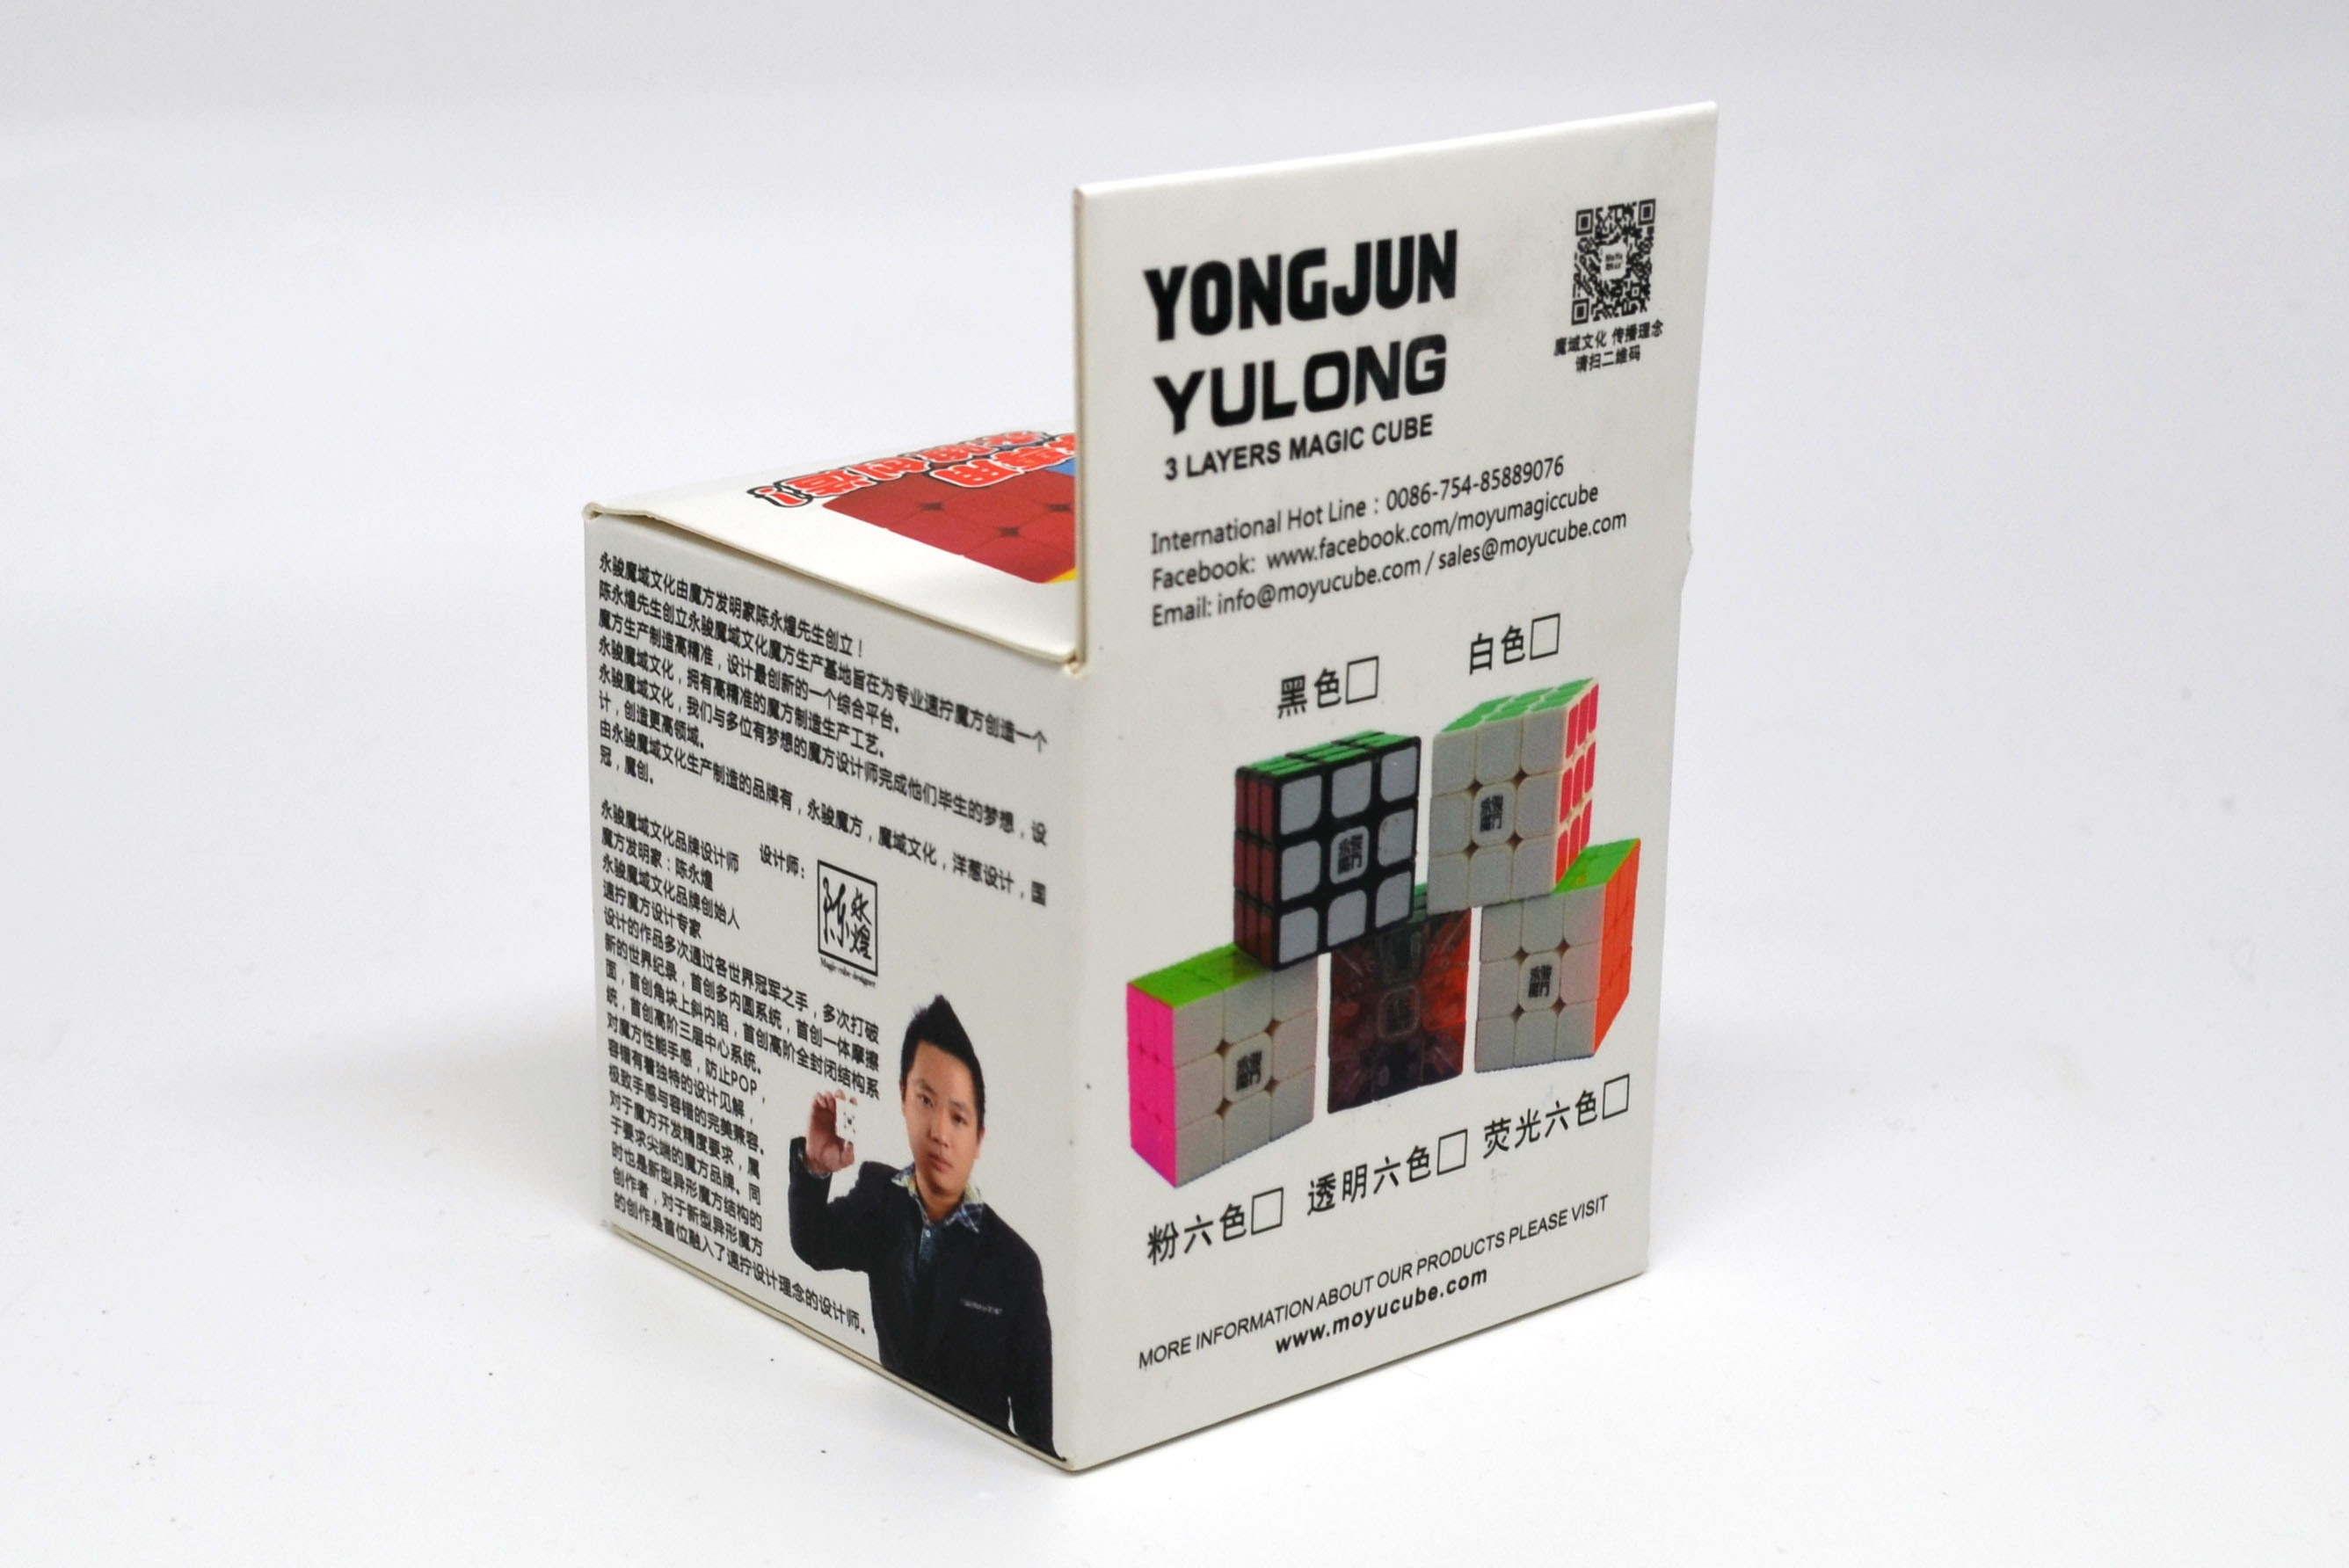 Although everything is in Chinese, there's really no language issue with this type of puzzle game.